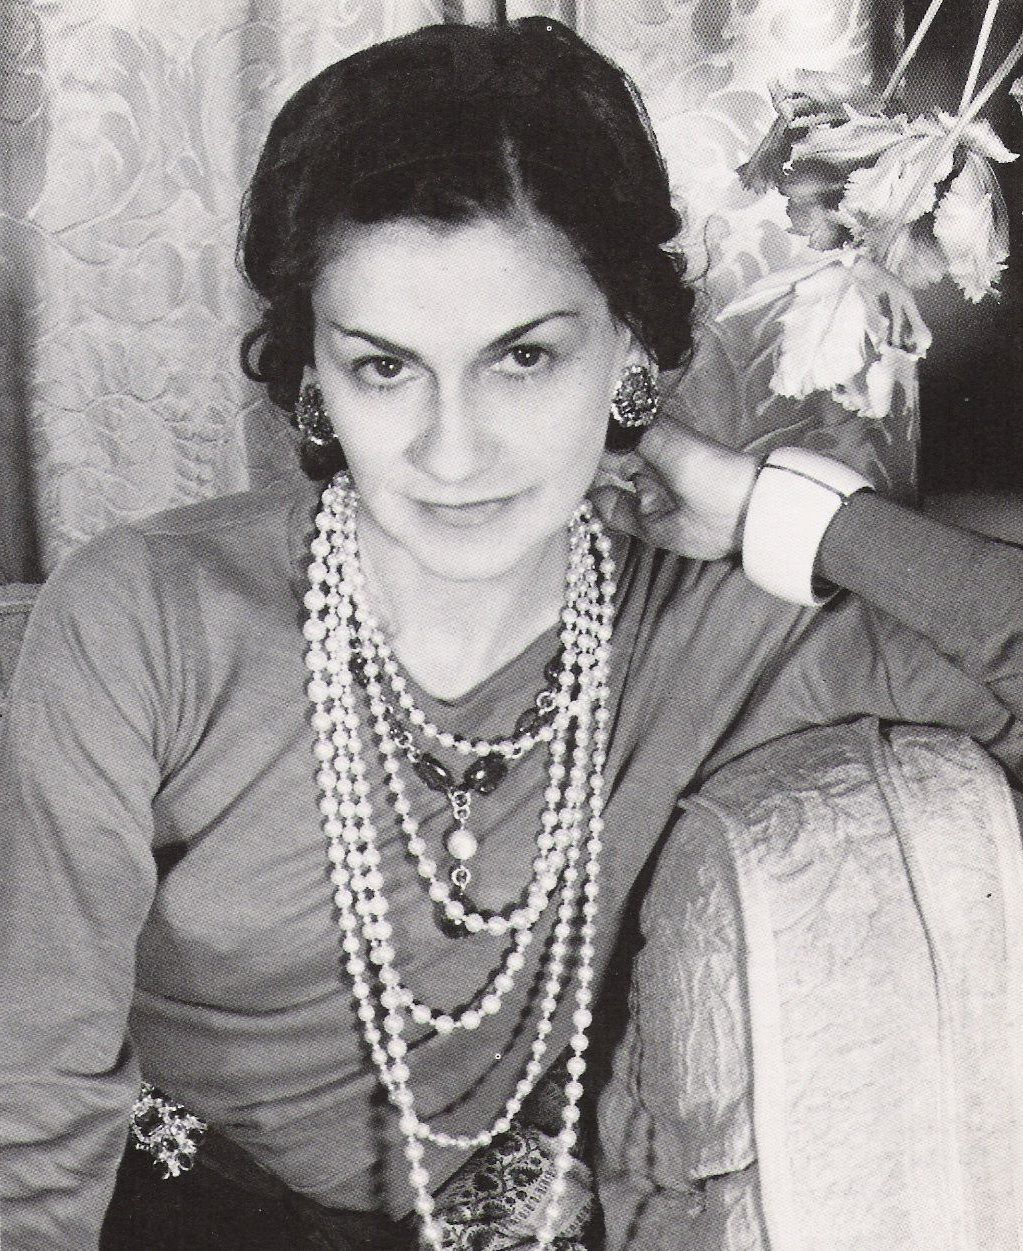 Chanel   Coco Chanel (1883 – 1971)   people   Pinterest   Visages ... 811e5751fc4